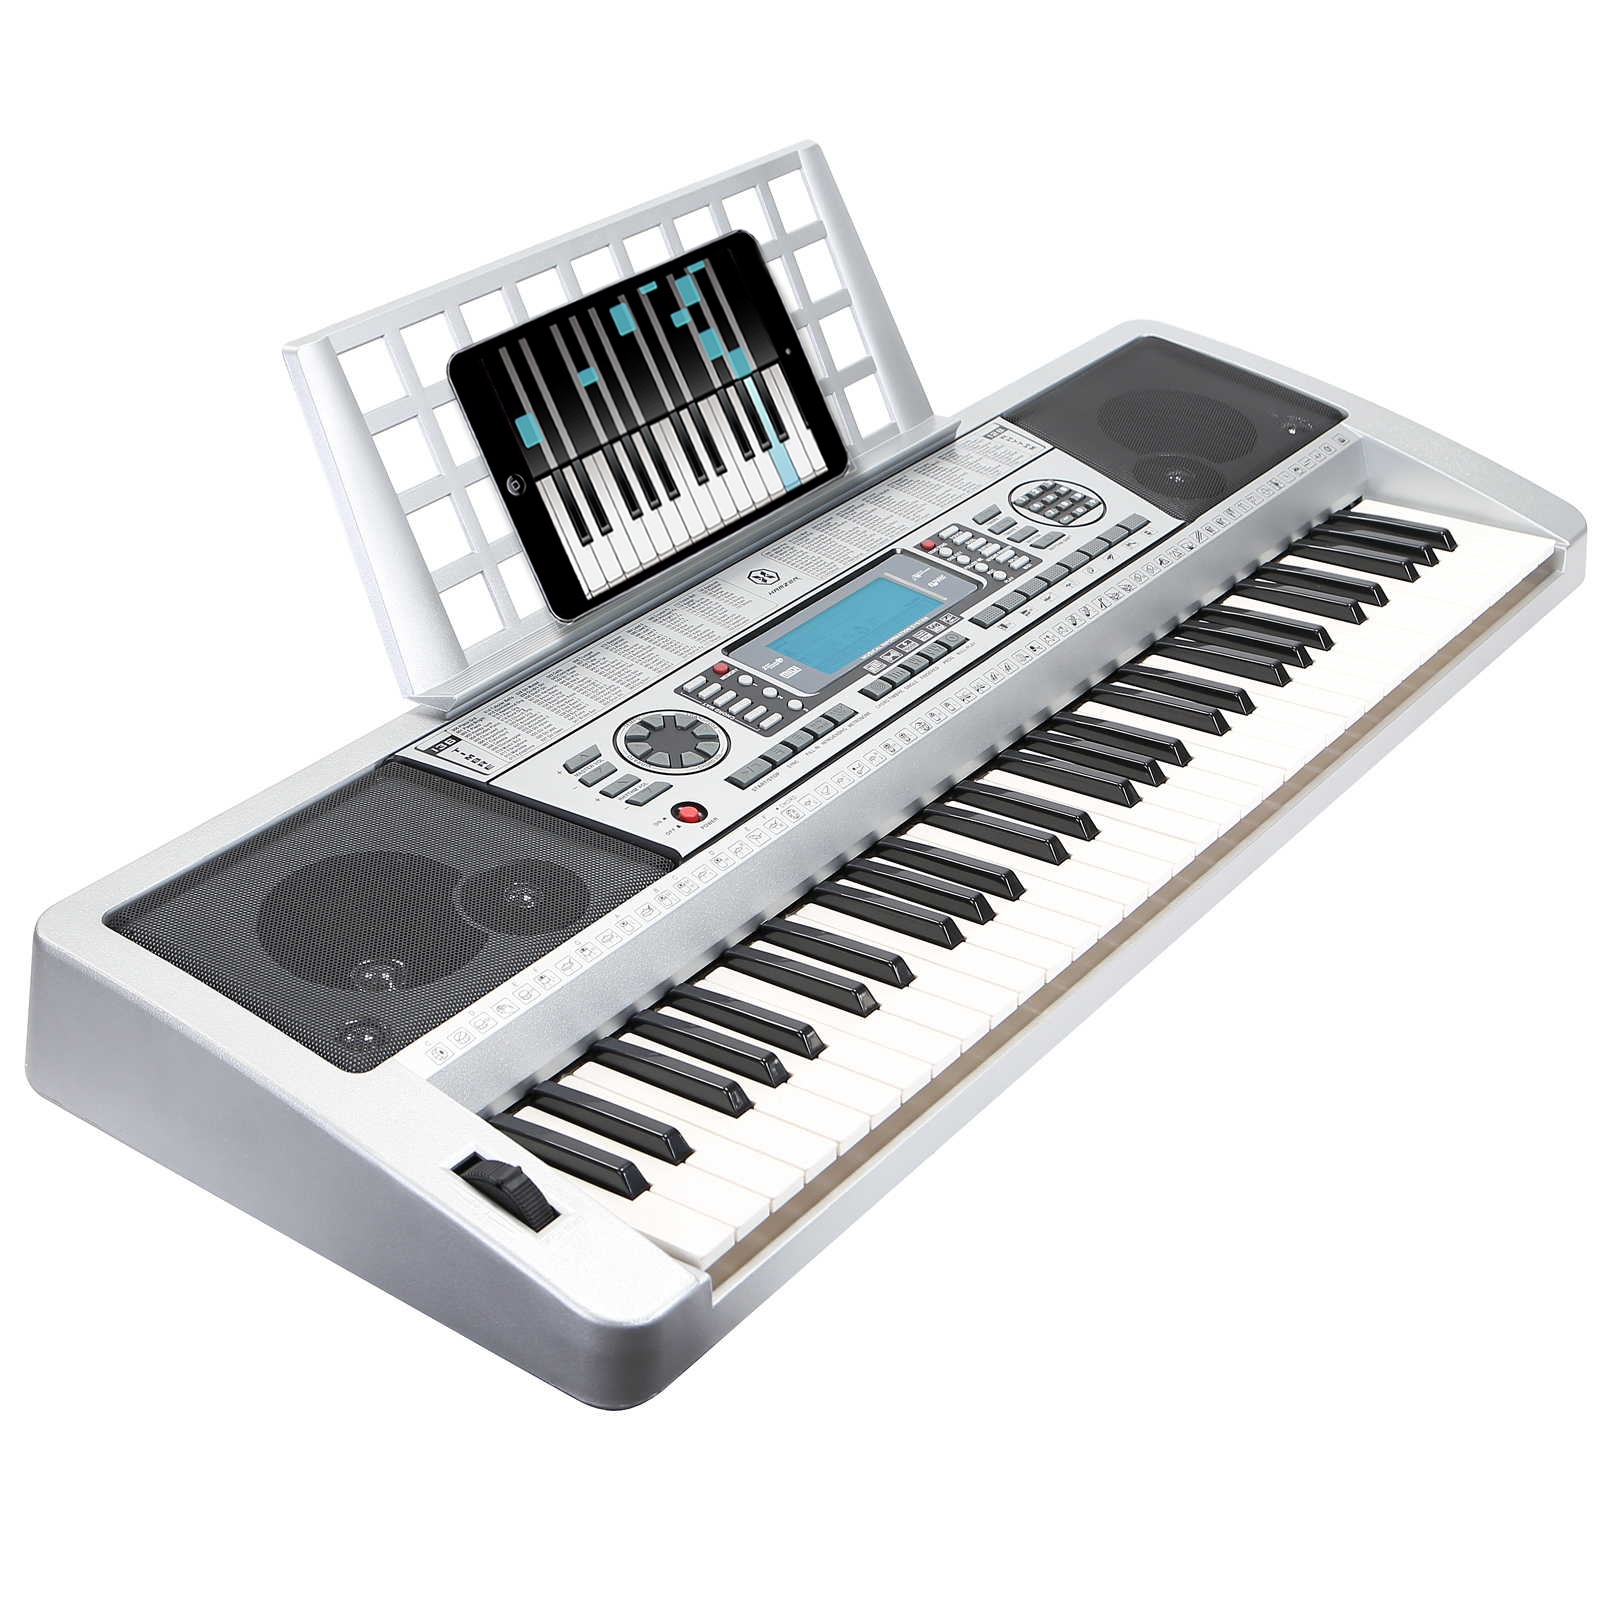 Hamzer 61-Key Digital Music Piano Keyboard – Portable Electronic Musical Instrument - MIDI Output & Touch Sensitive Keys